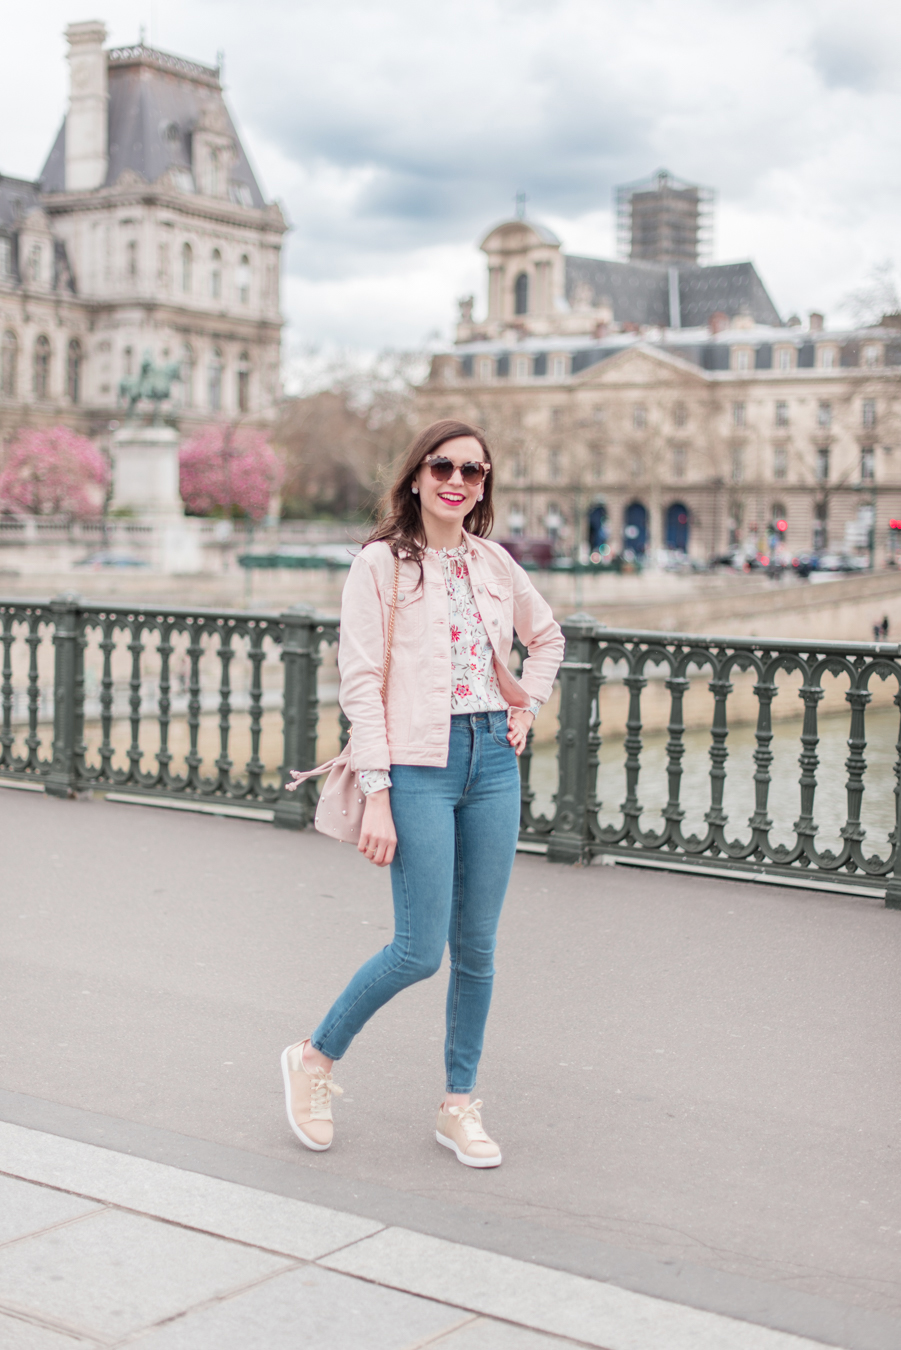 Blog-Mode-And-The-City-Looks-La-veste-en-jean-rose-parfaite